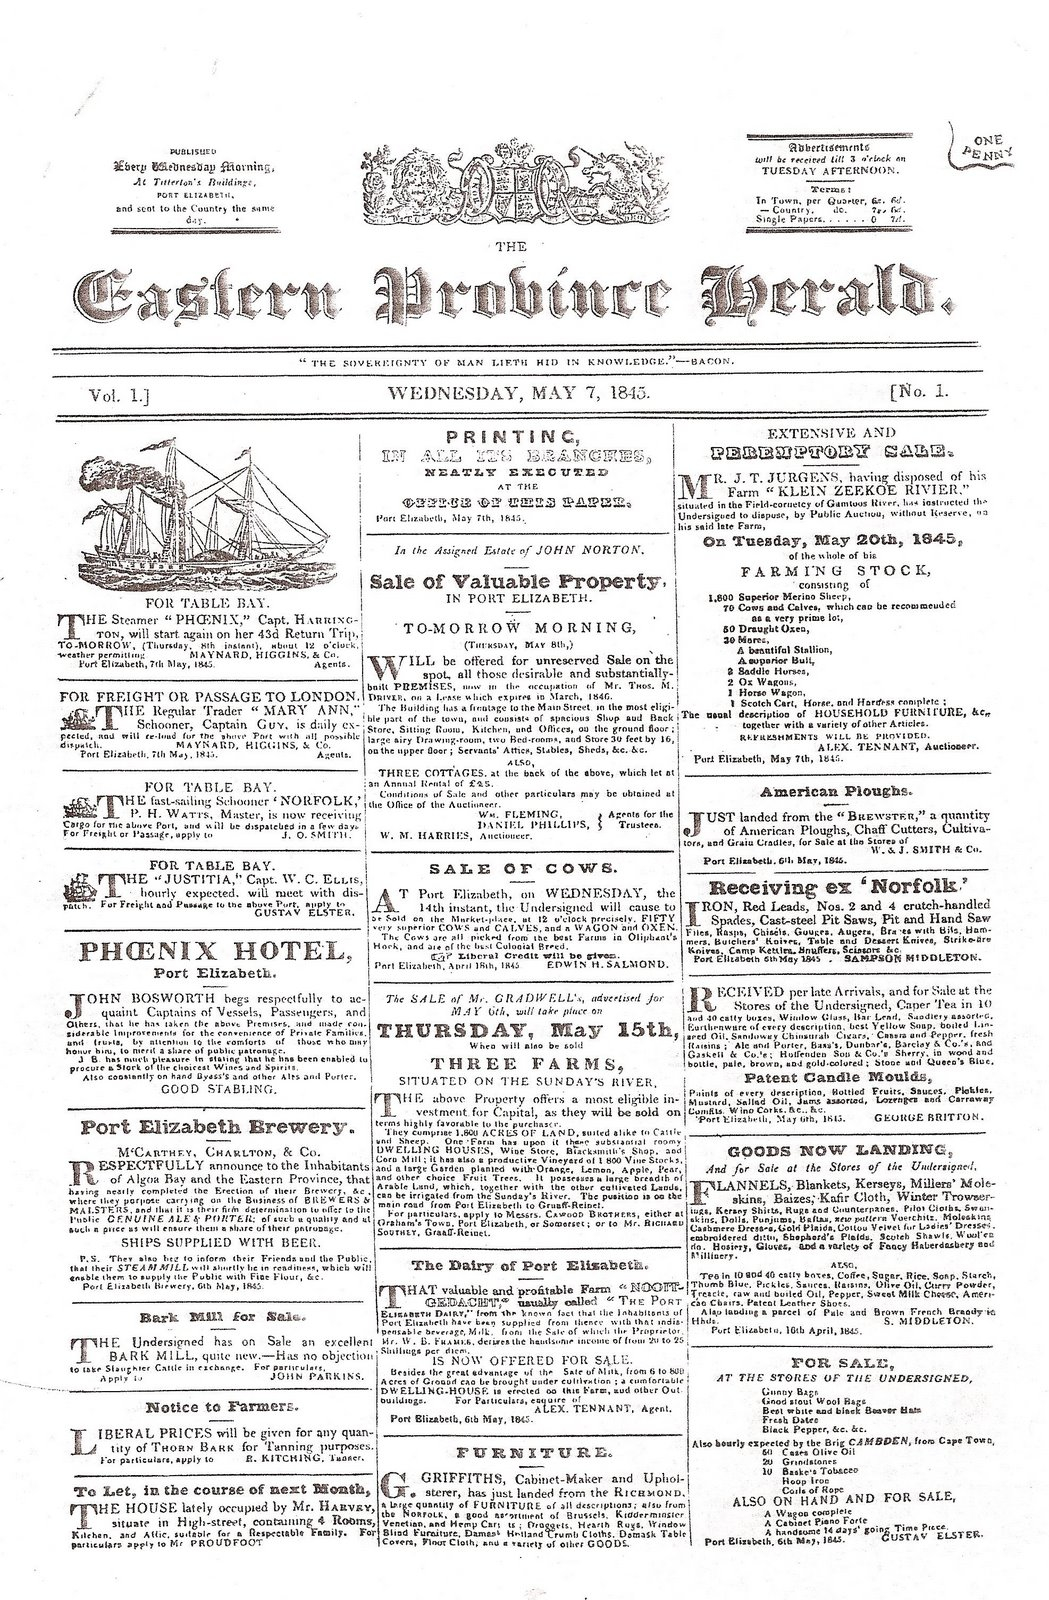 First issue of the E.P. Herald